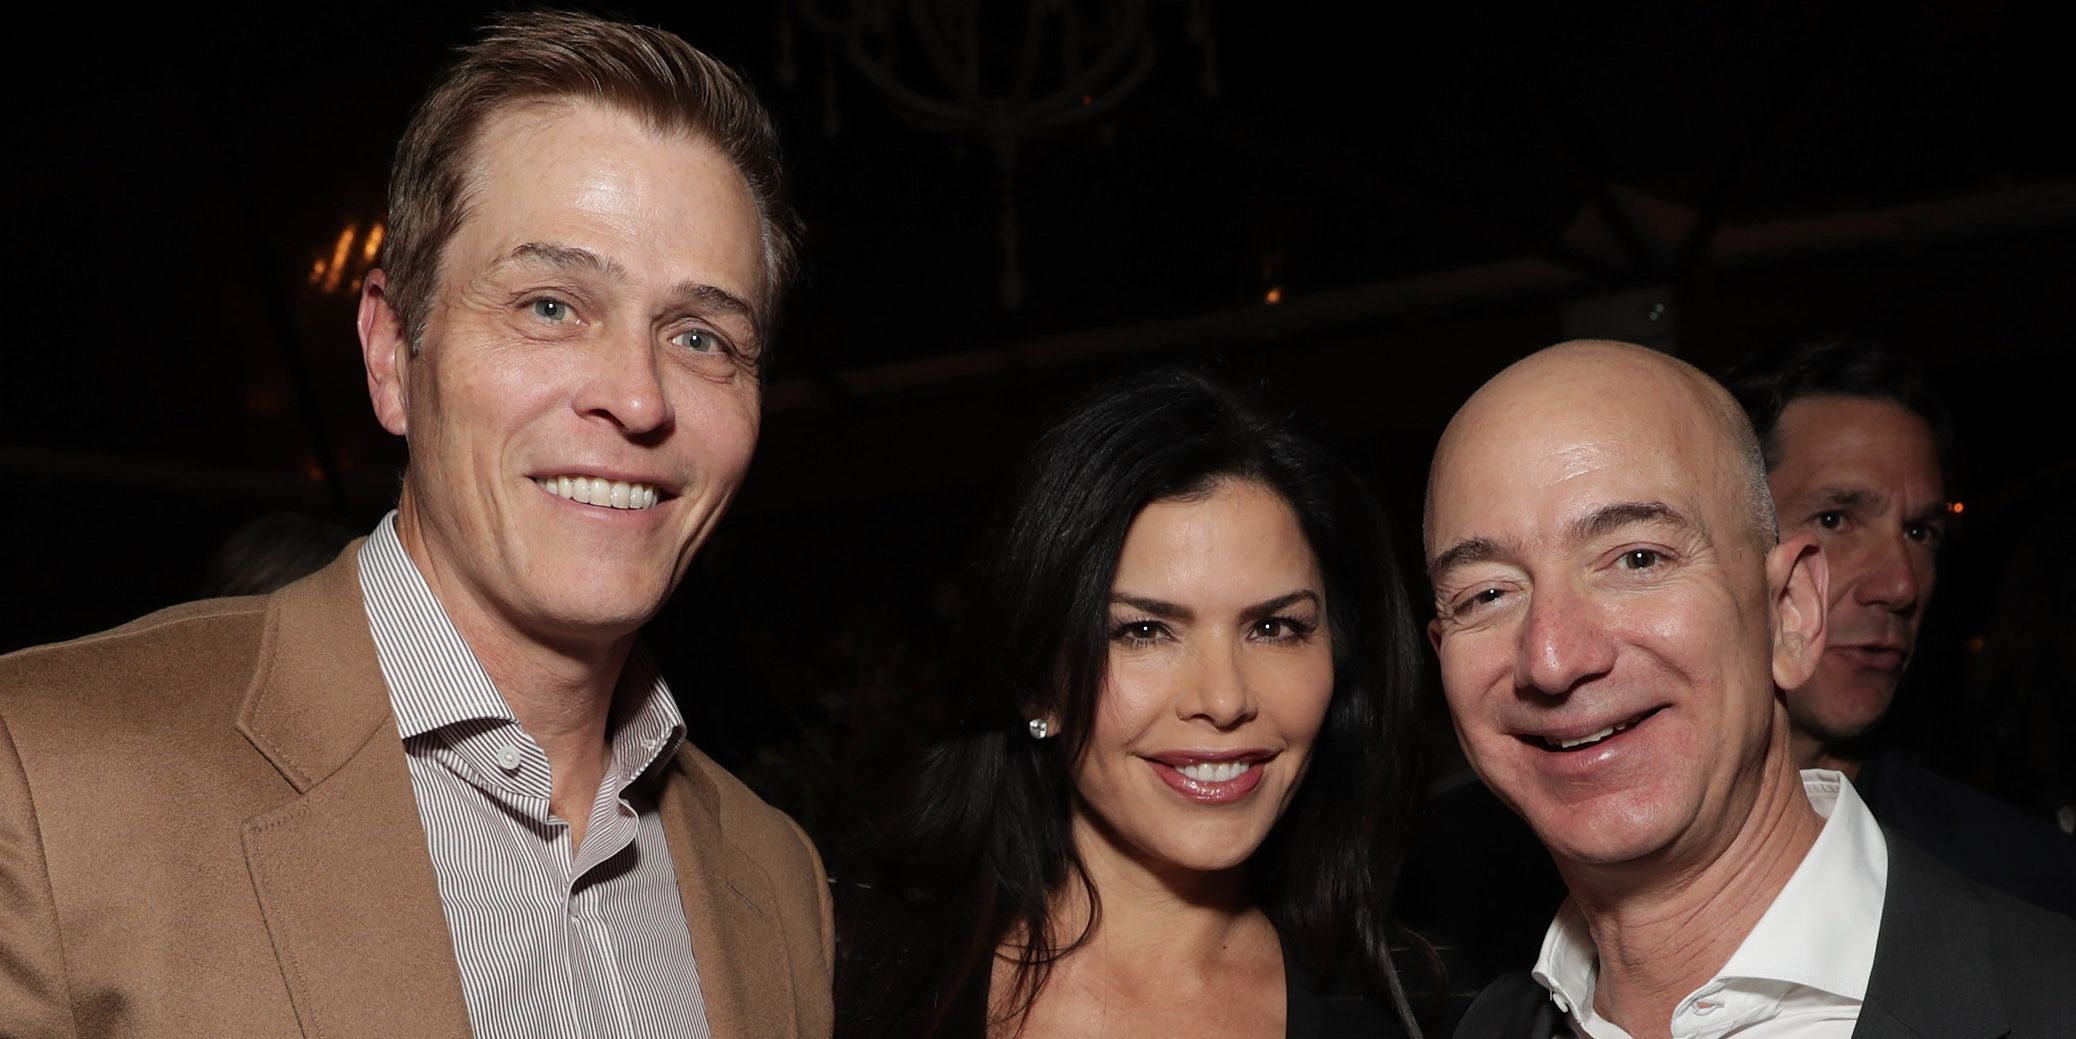 Patrick Whitesell, the Husband of Lauren Sanchez, Is One of the Most Powerful Men in Hollywood